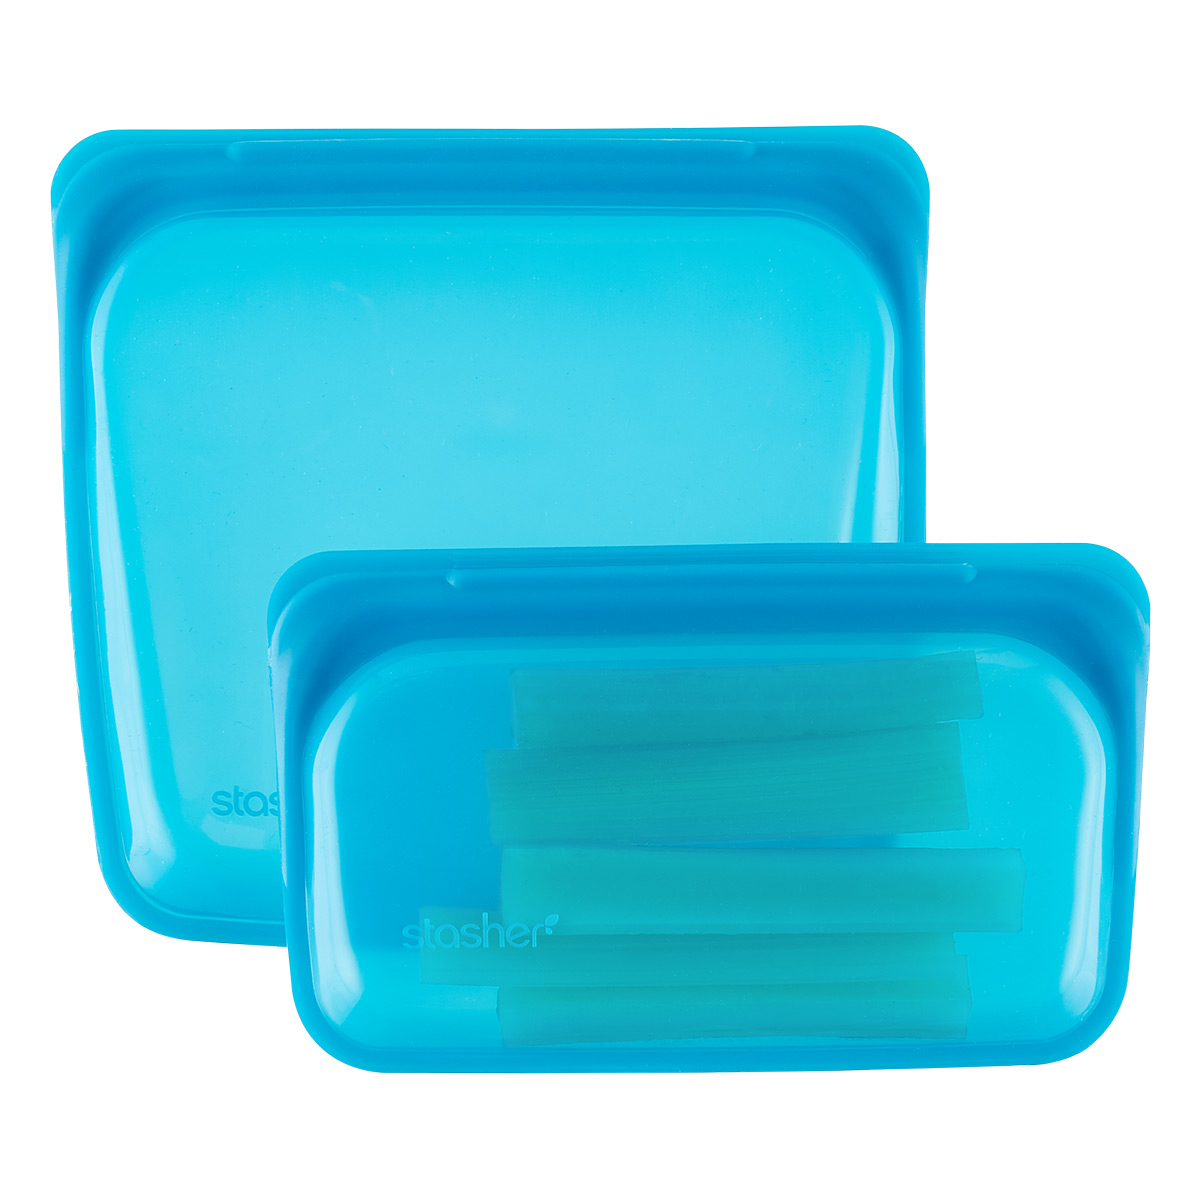 Stasher Blueberry Silicone Reusable Storage Bag